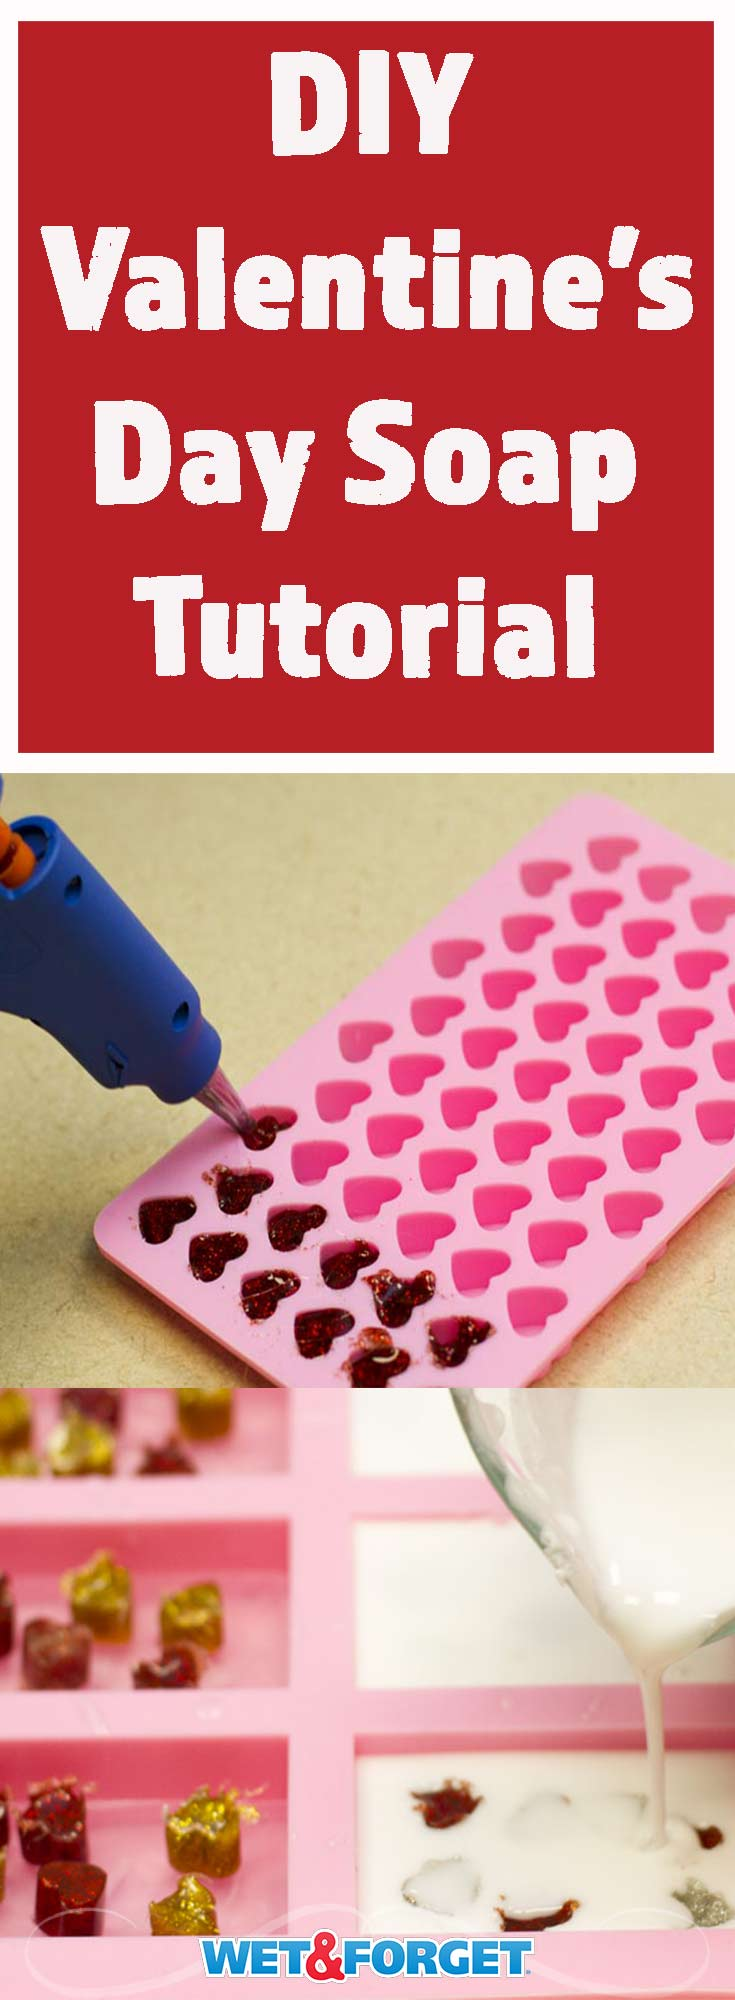 This Valentine's Day soap makes a great gift for the upcoming holiday! Learn how to make it with our easy tutorial.